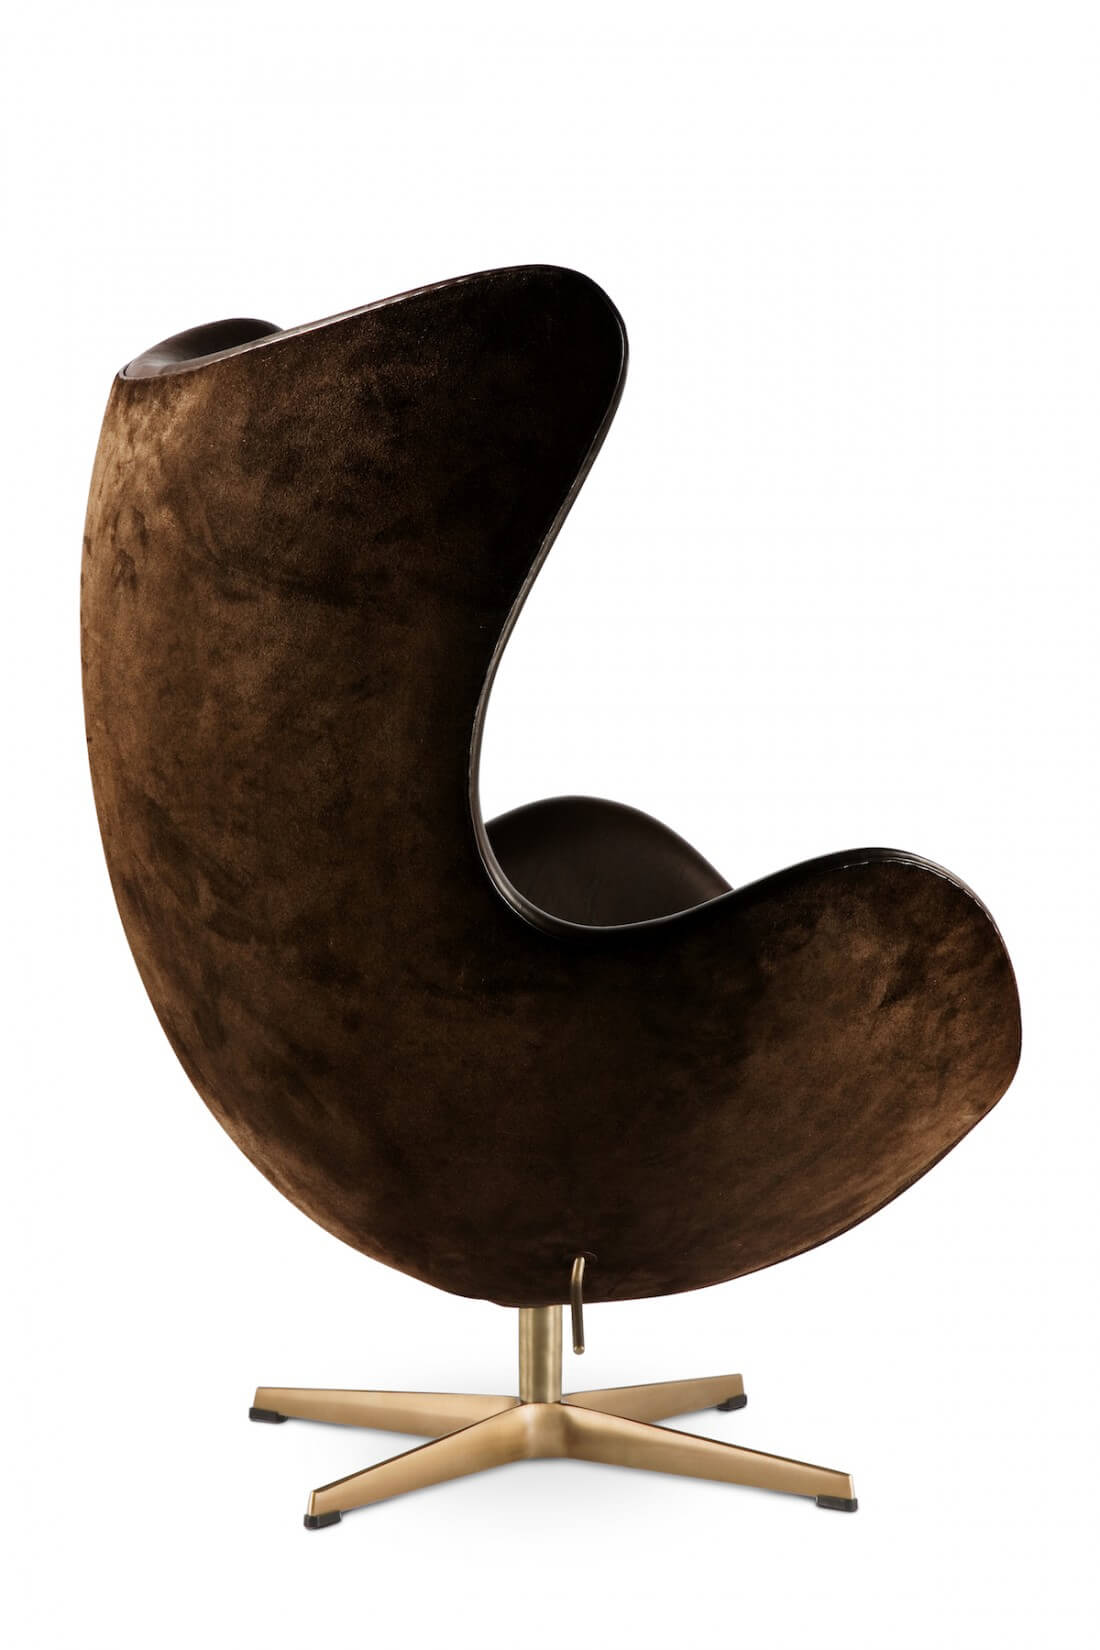 The Golden Egg A Limited Edition price on request Furn 14